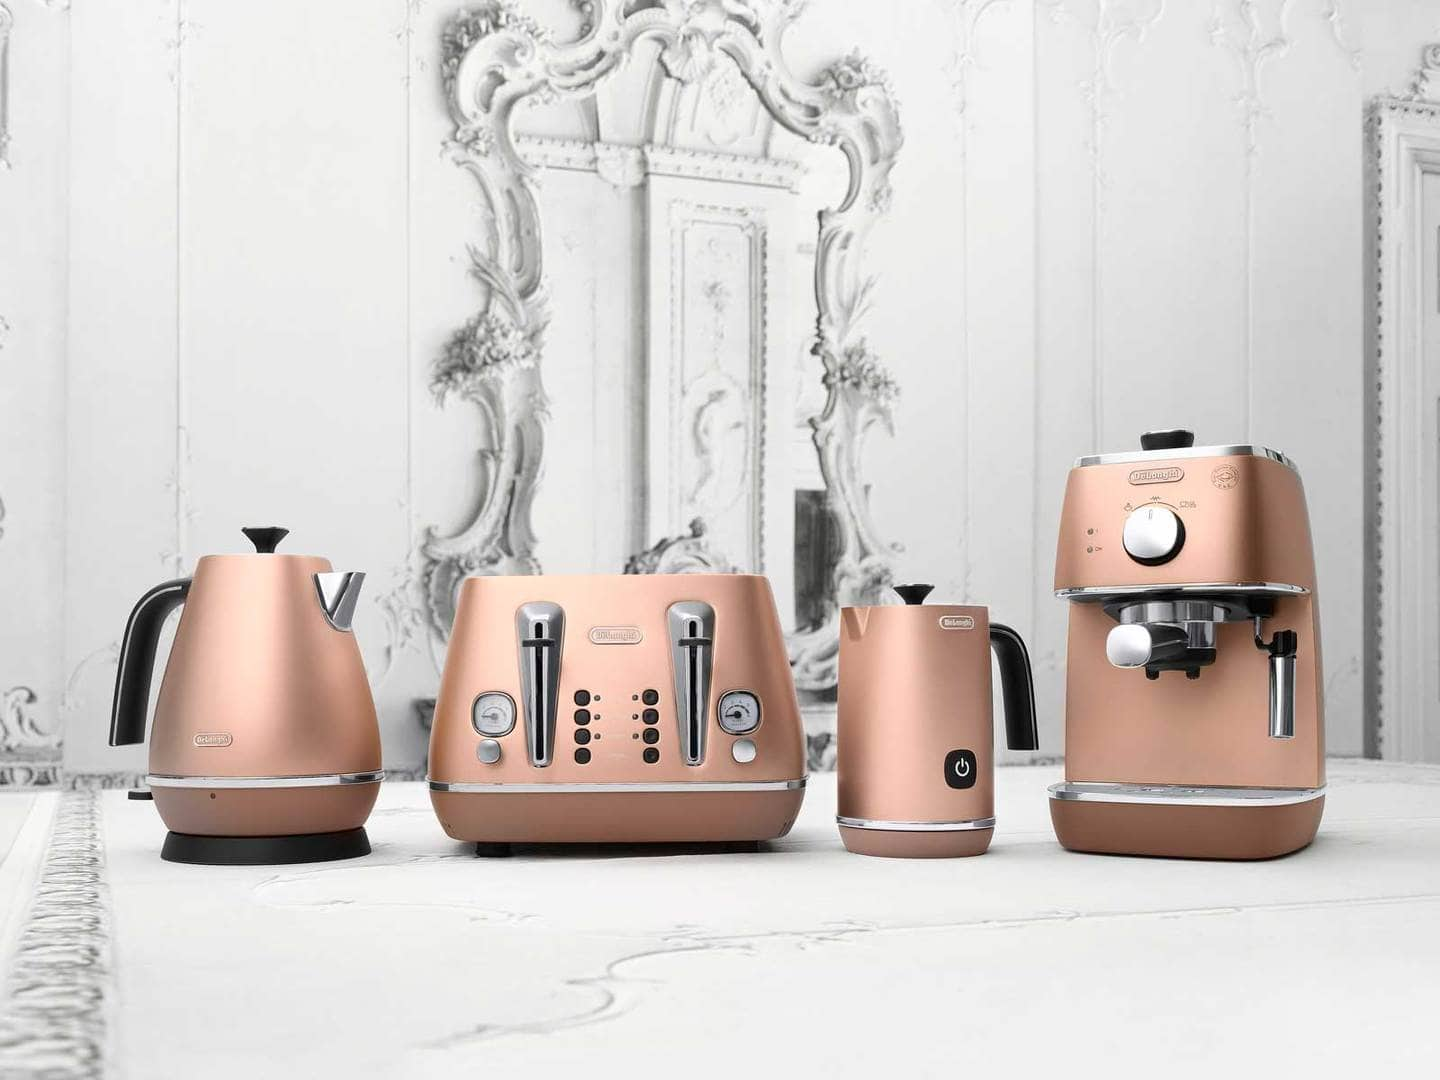 Delonghi distinta kitchen appliances in copper colour